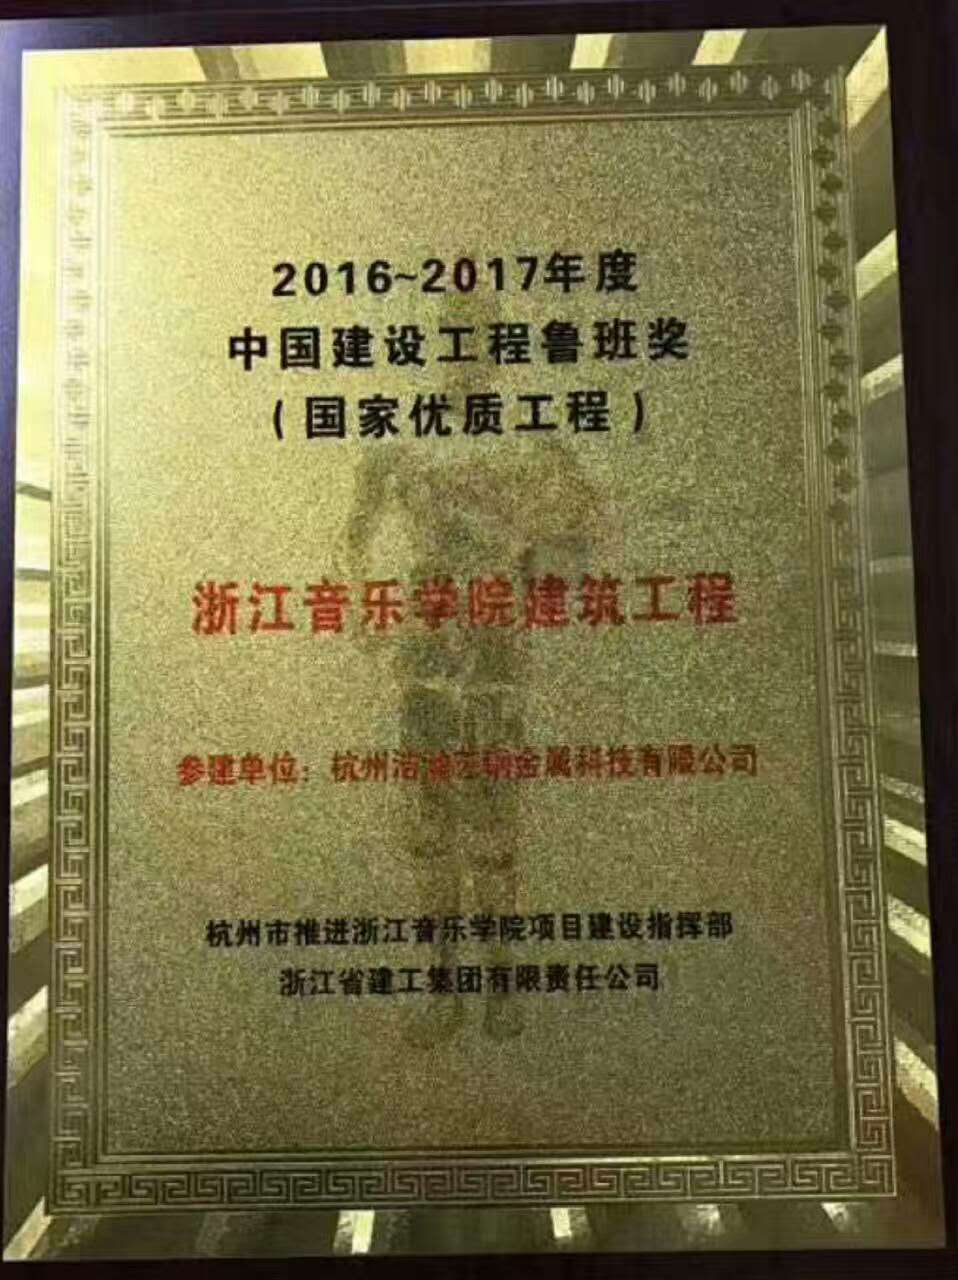 The Luban Prize for Construction Project